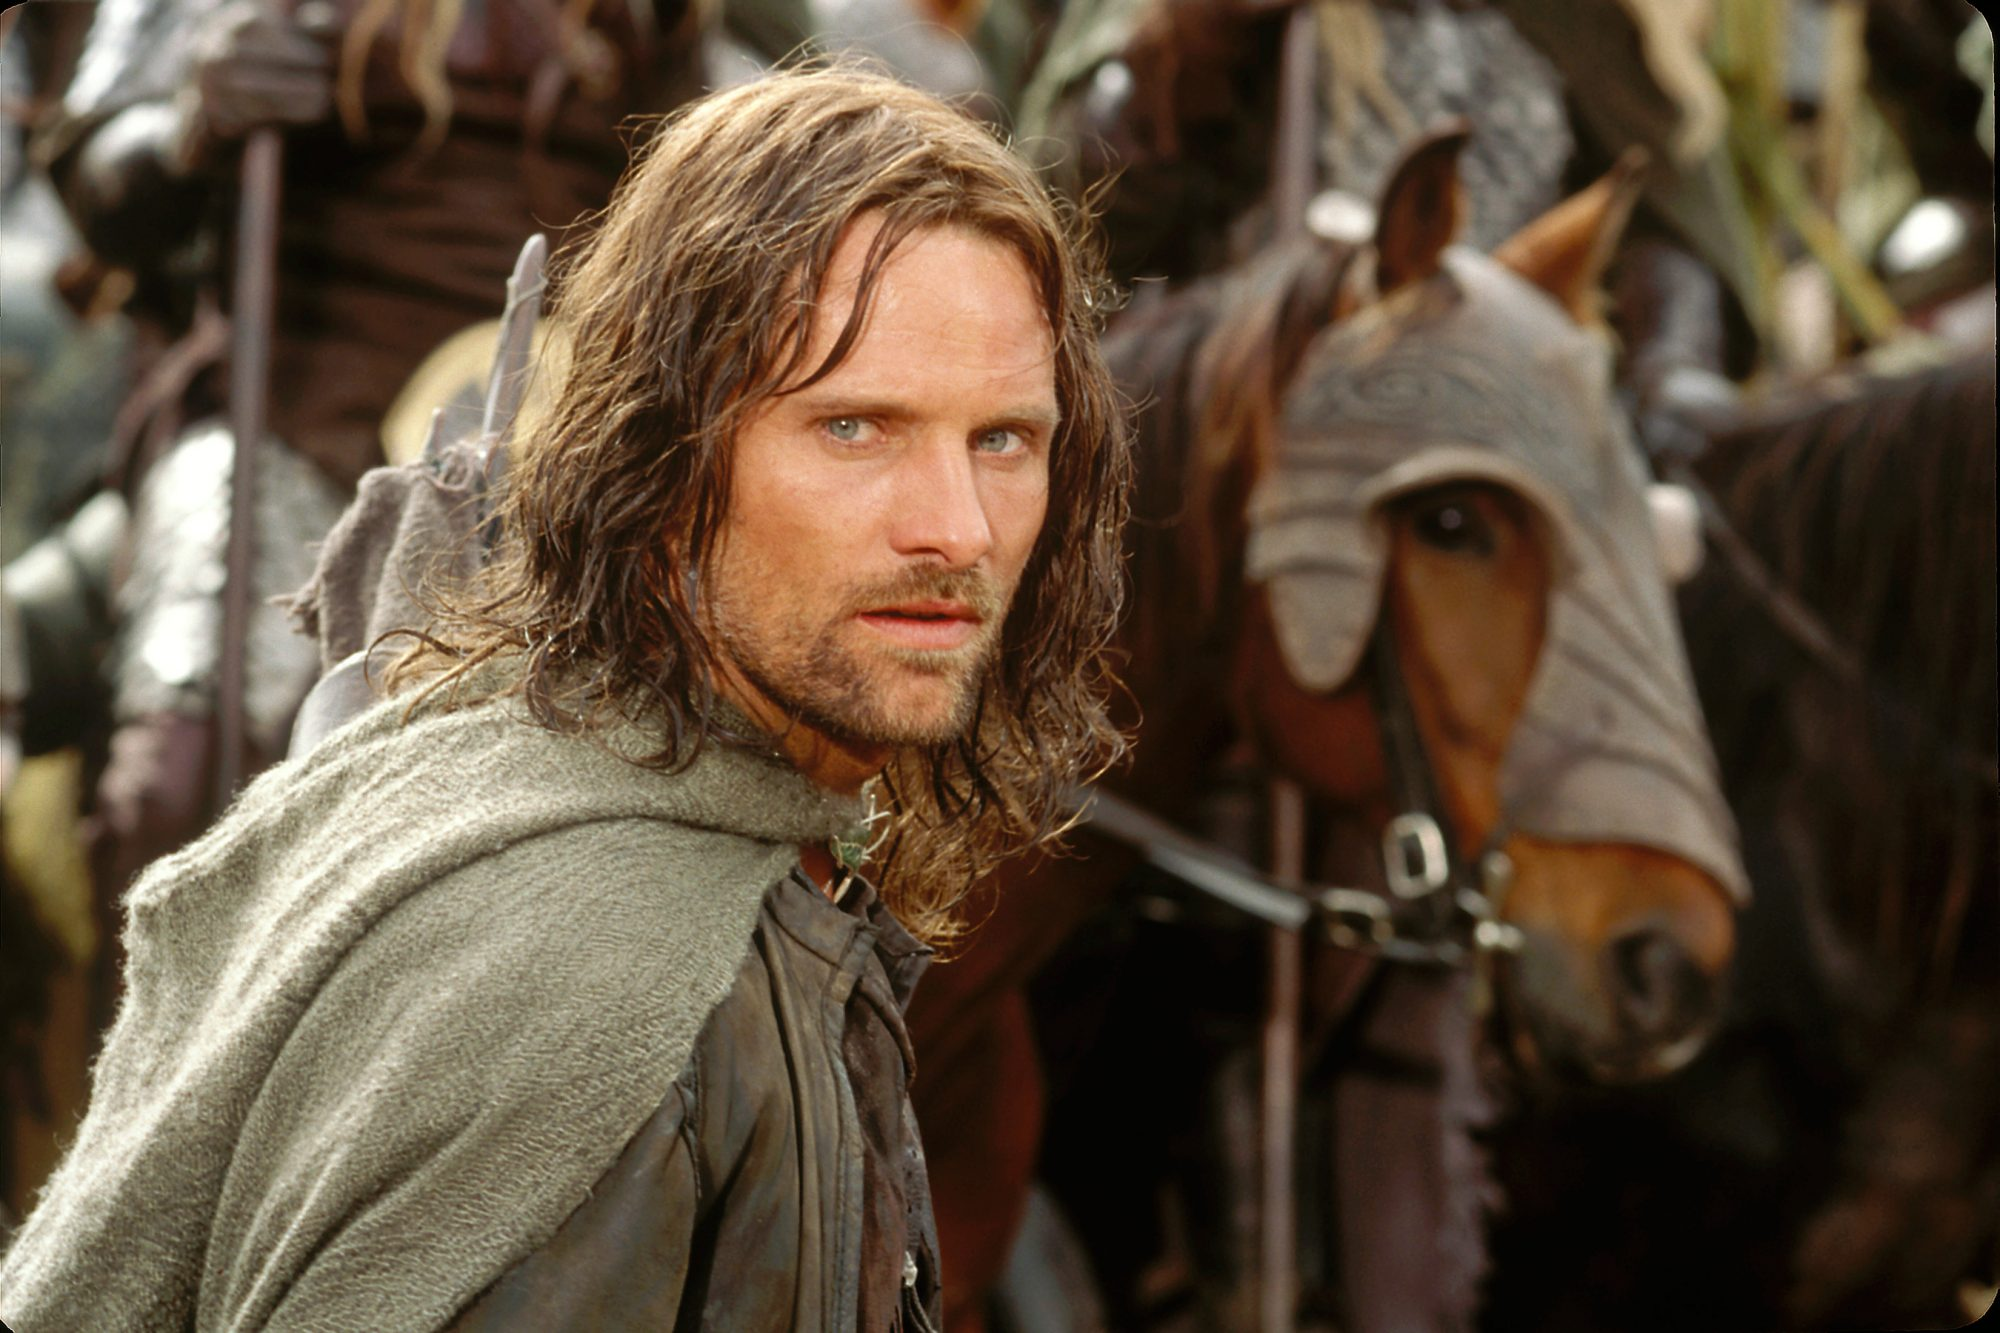 Lord of the Rings: The Two Towers (2002)Viggo Mortensen